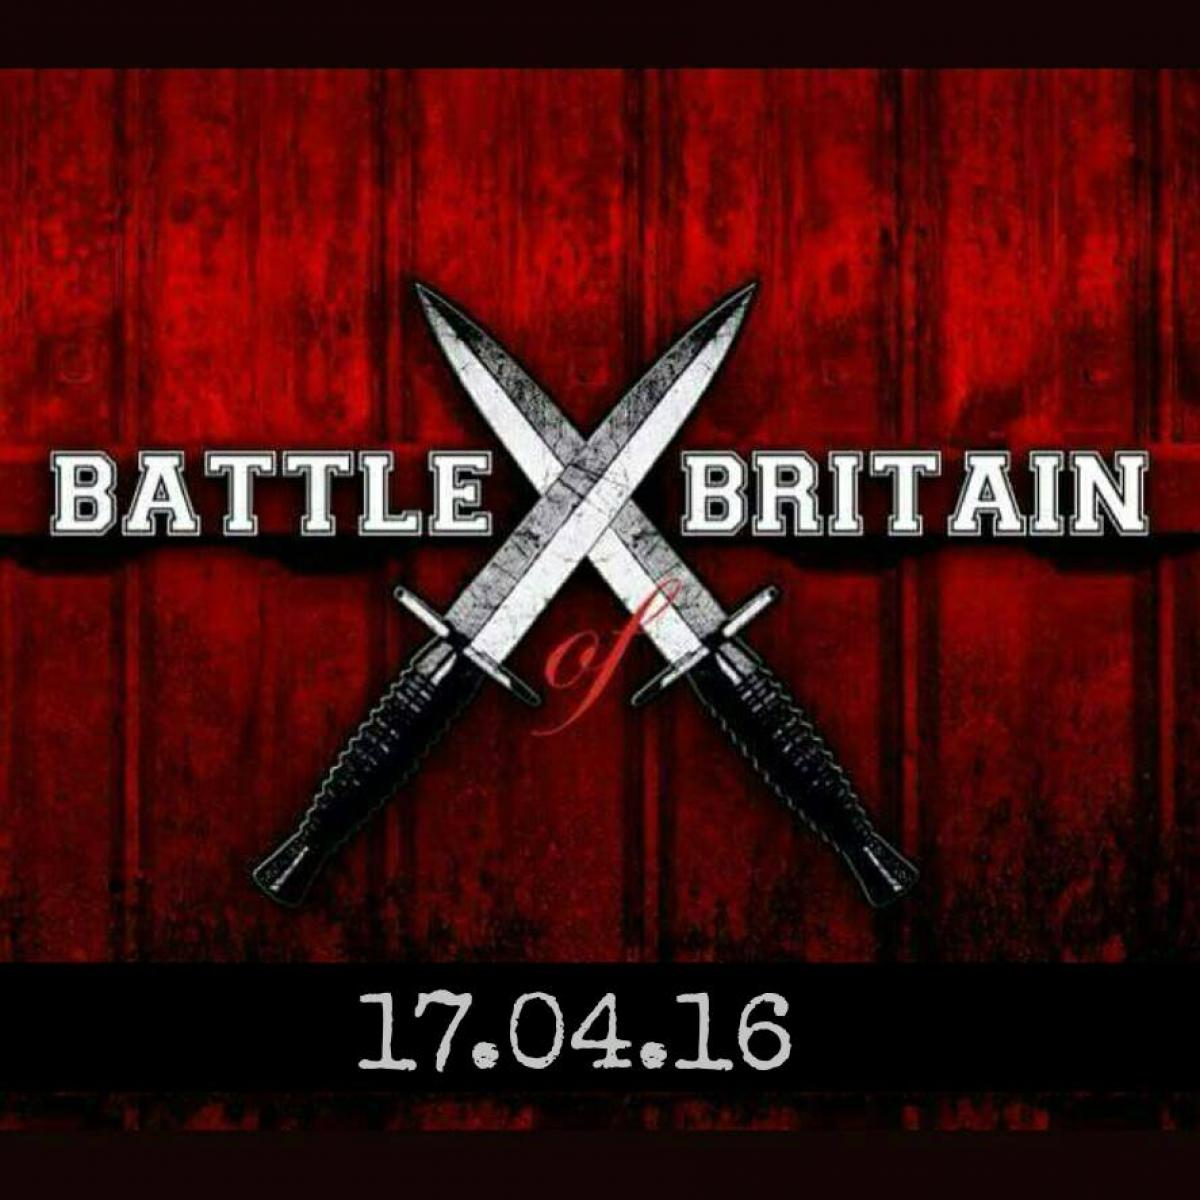 Battle-of-Britain-Throwdown